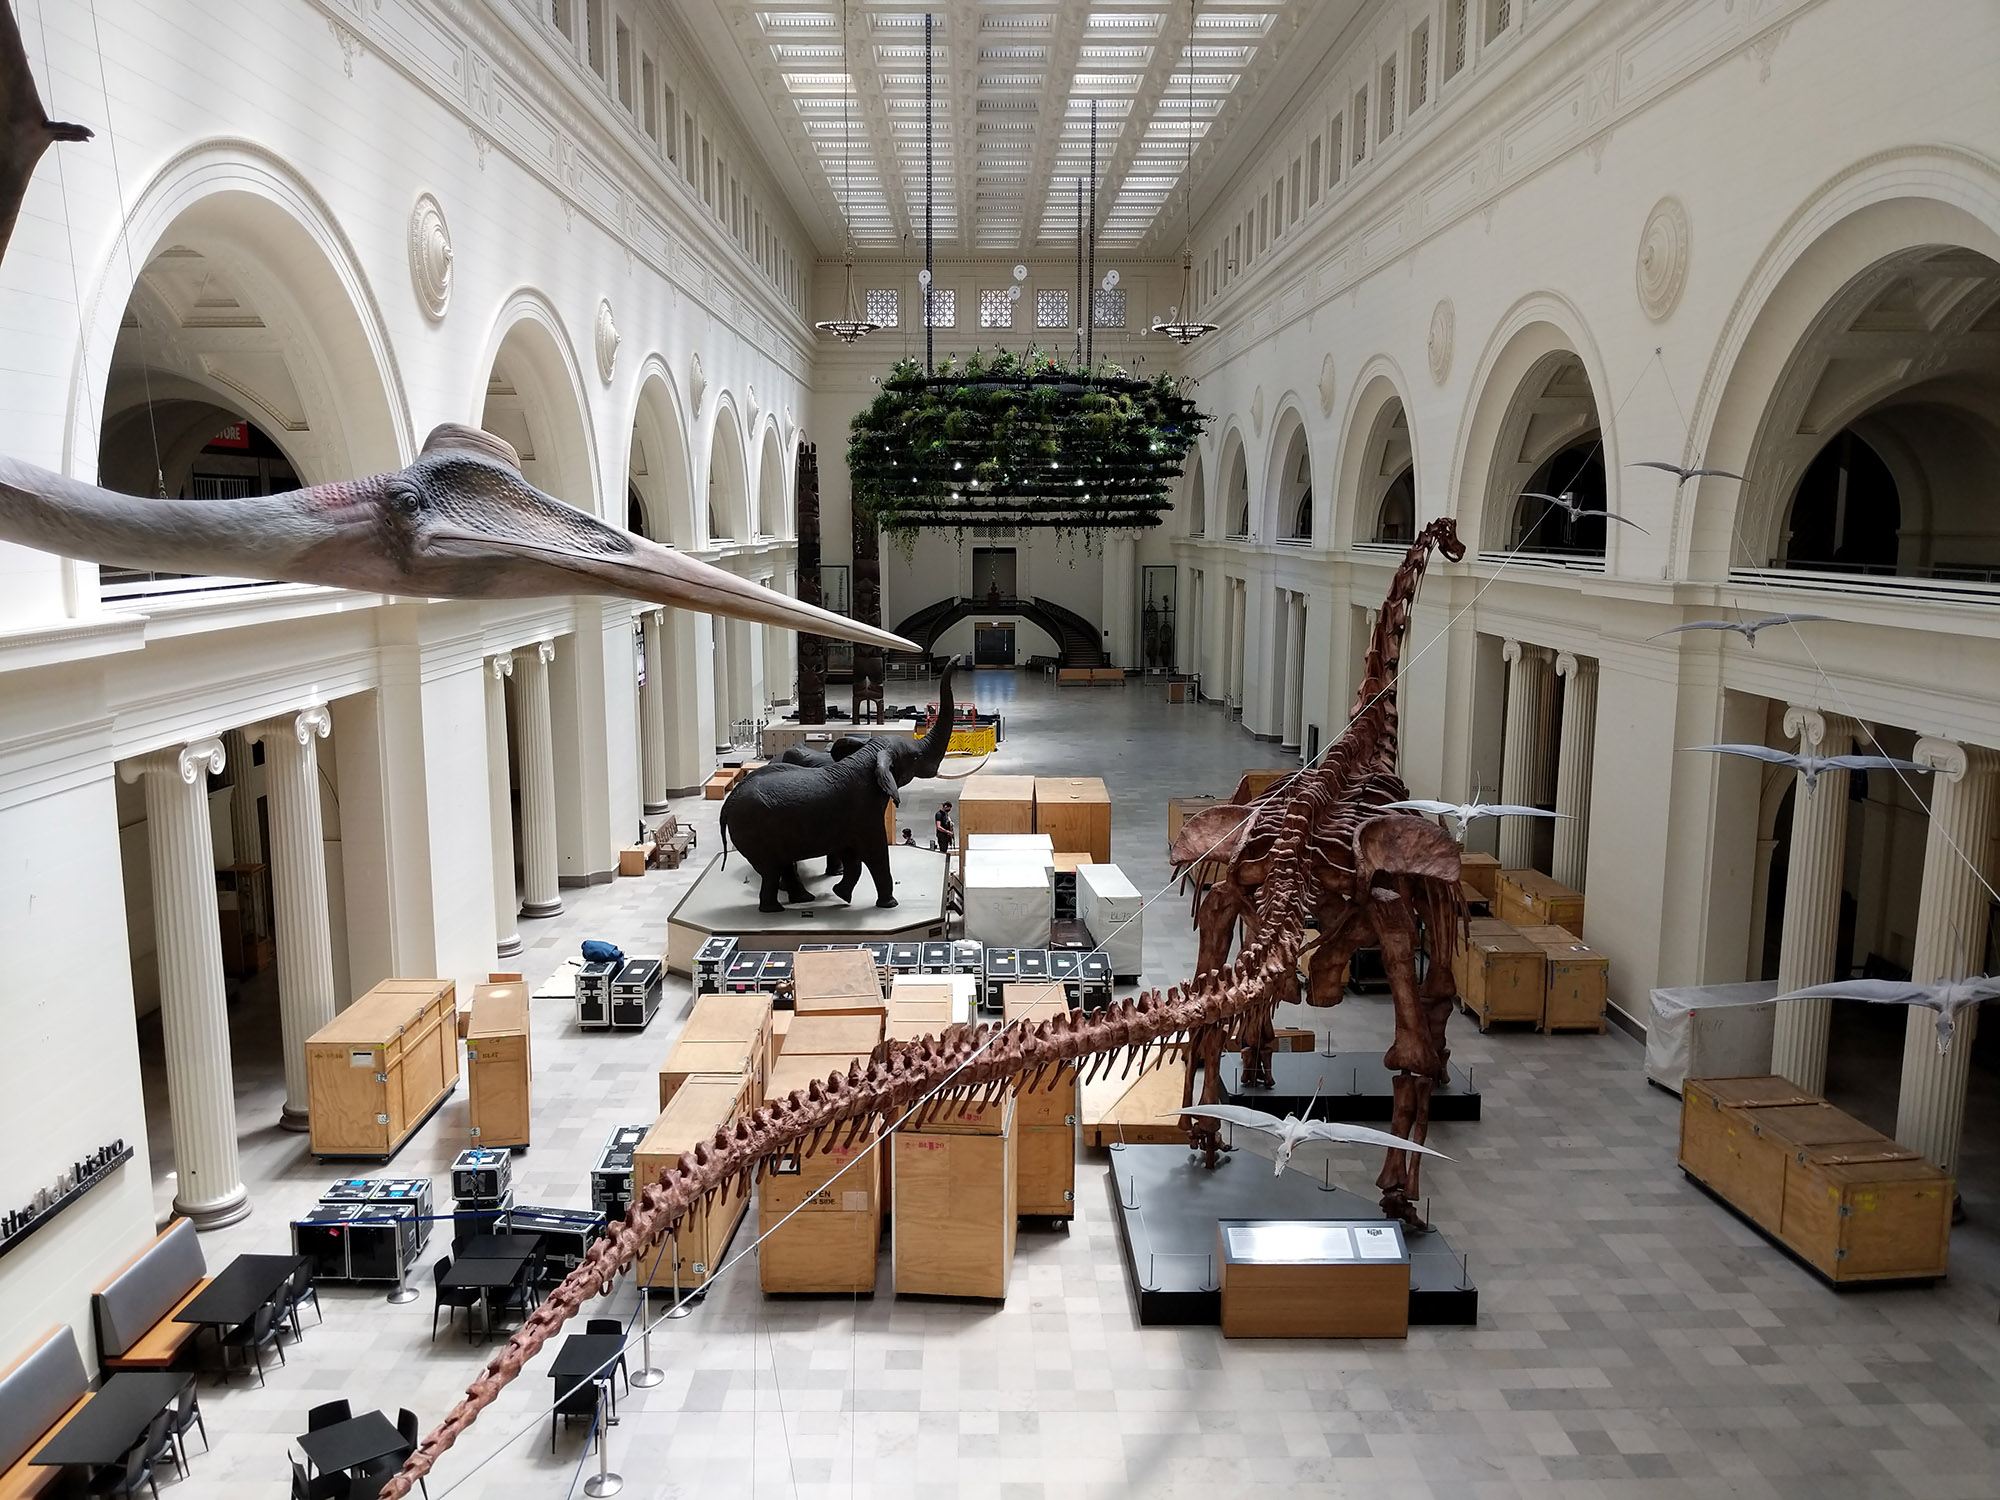 A large hall with many wooden crates in the middle, a dinosaur skeleton and an elephant statue.